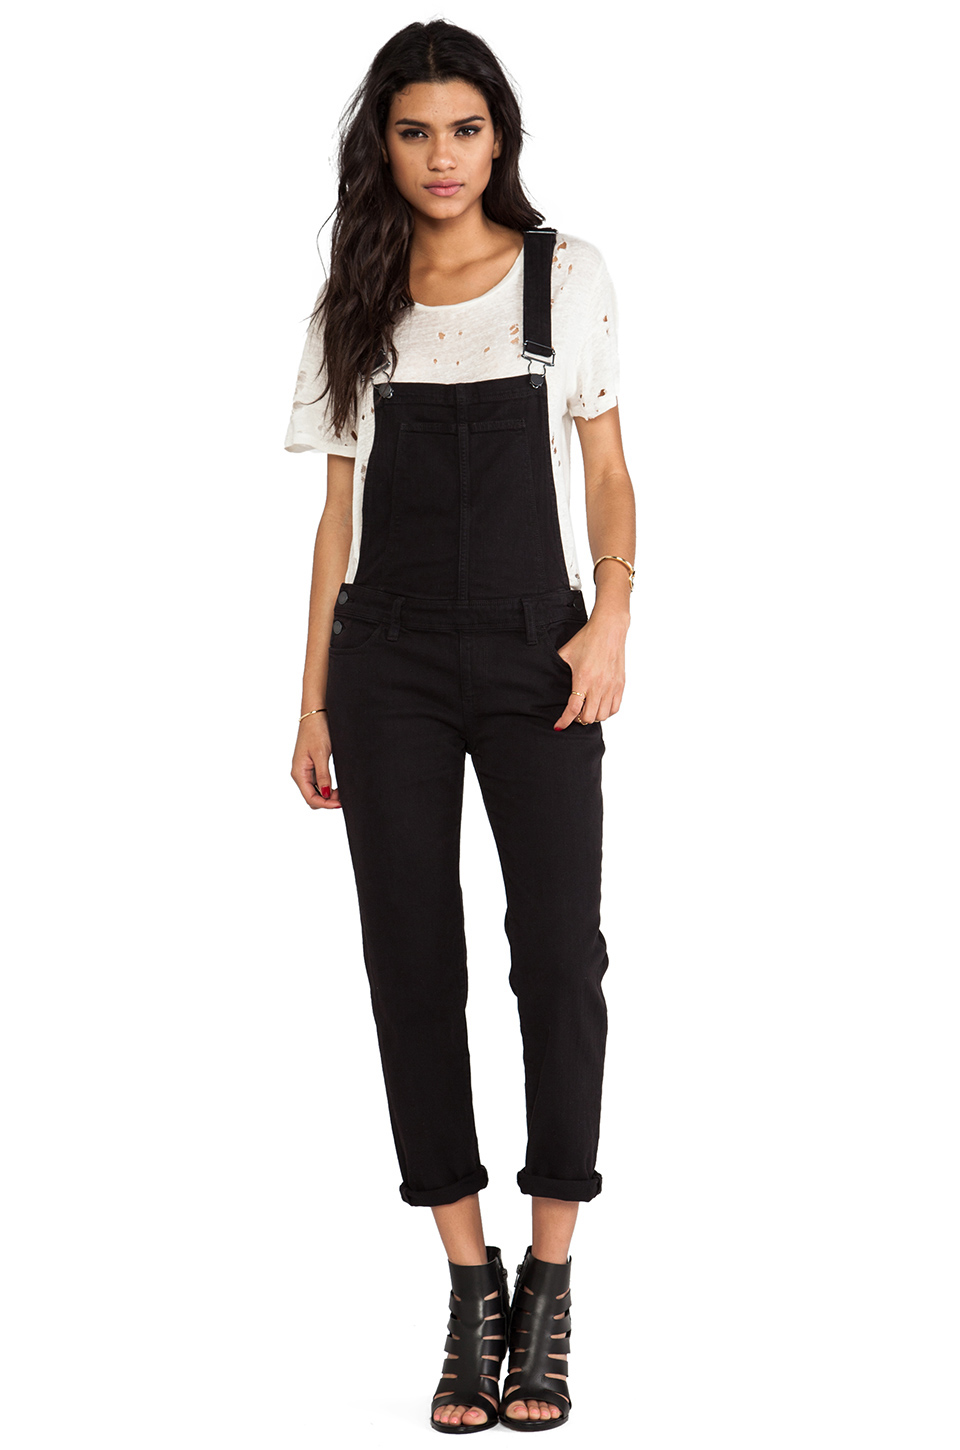 Are Dungarees Fashionable